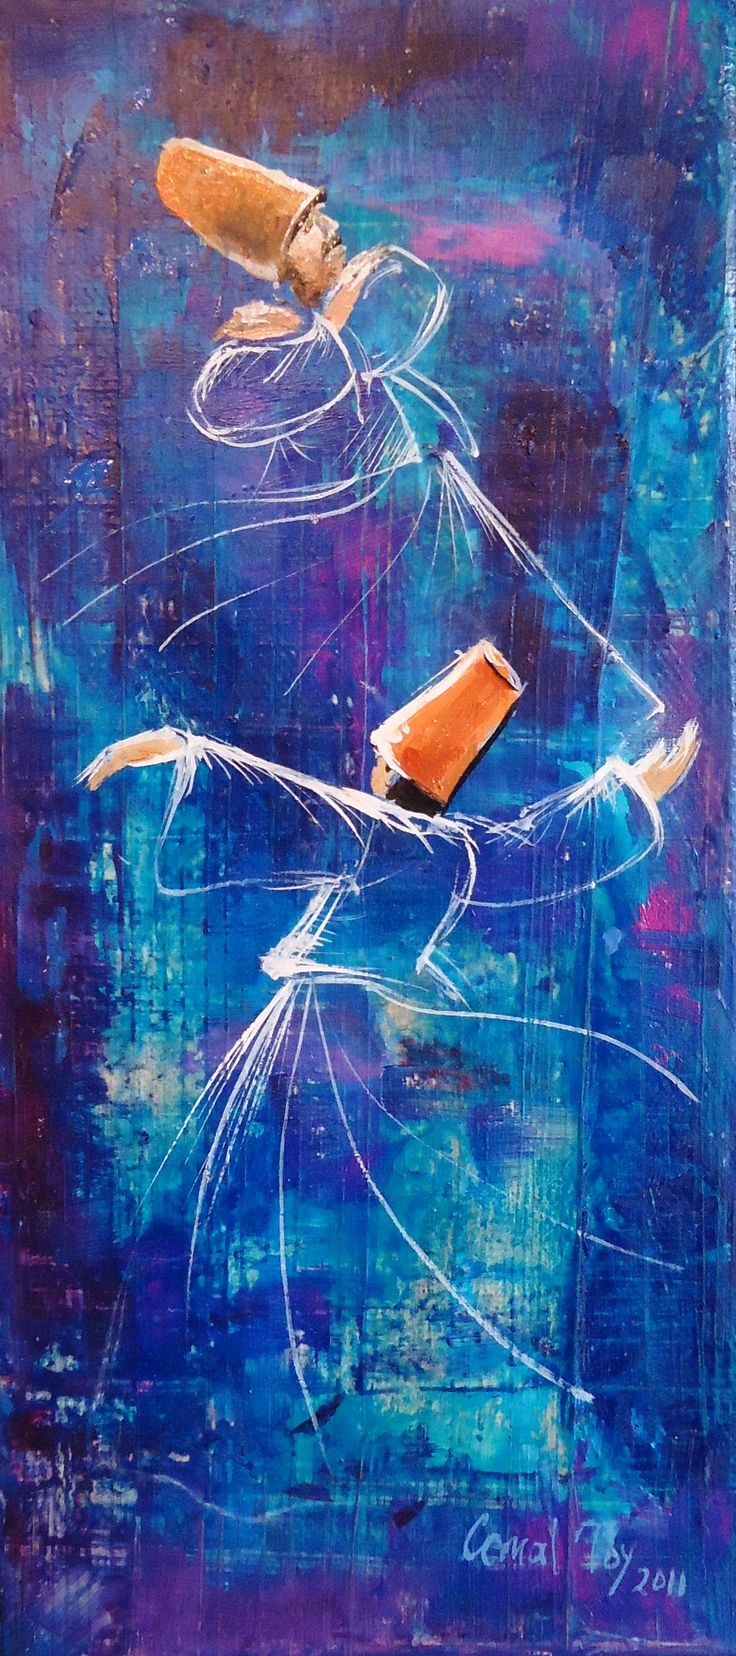 #cemaltoy #art #dervishes